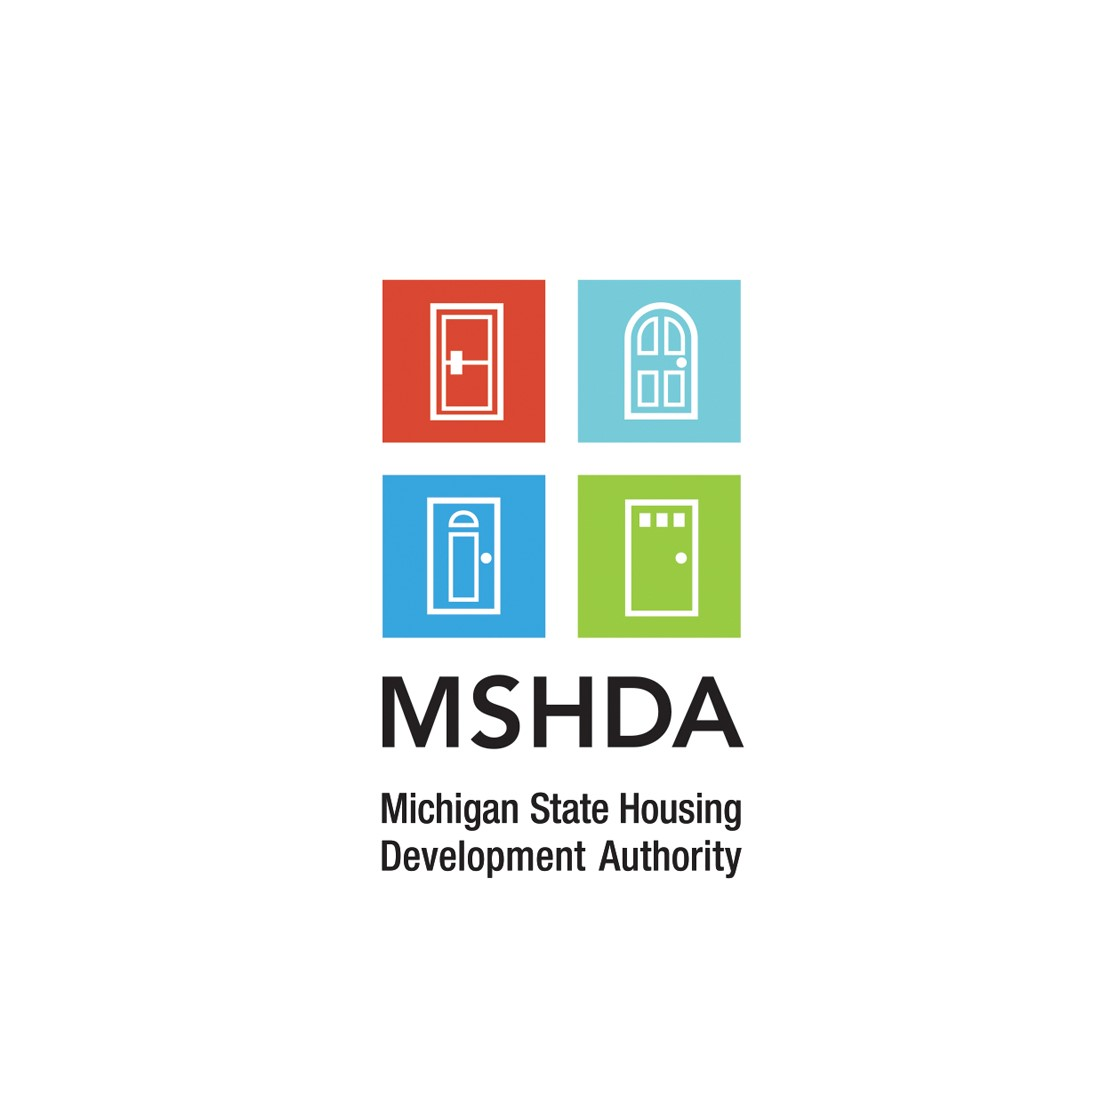 Michigan State Housing Development Authority (MSHDA)